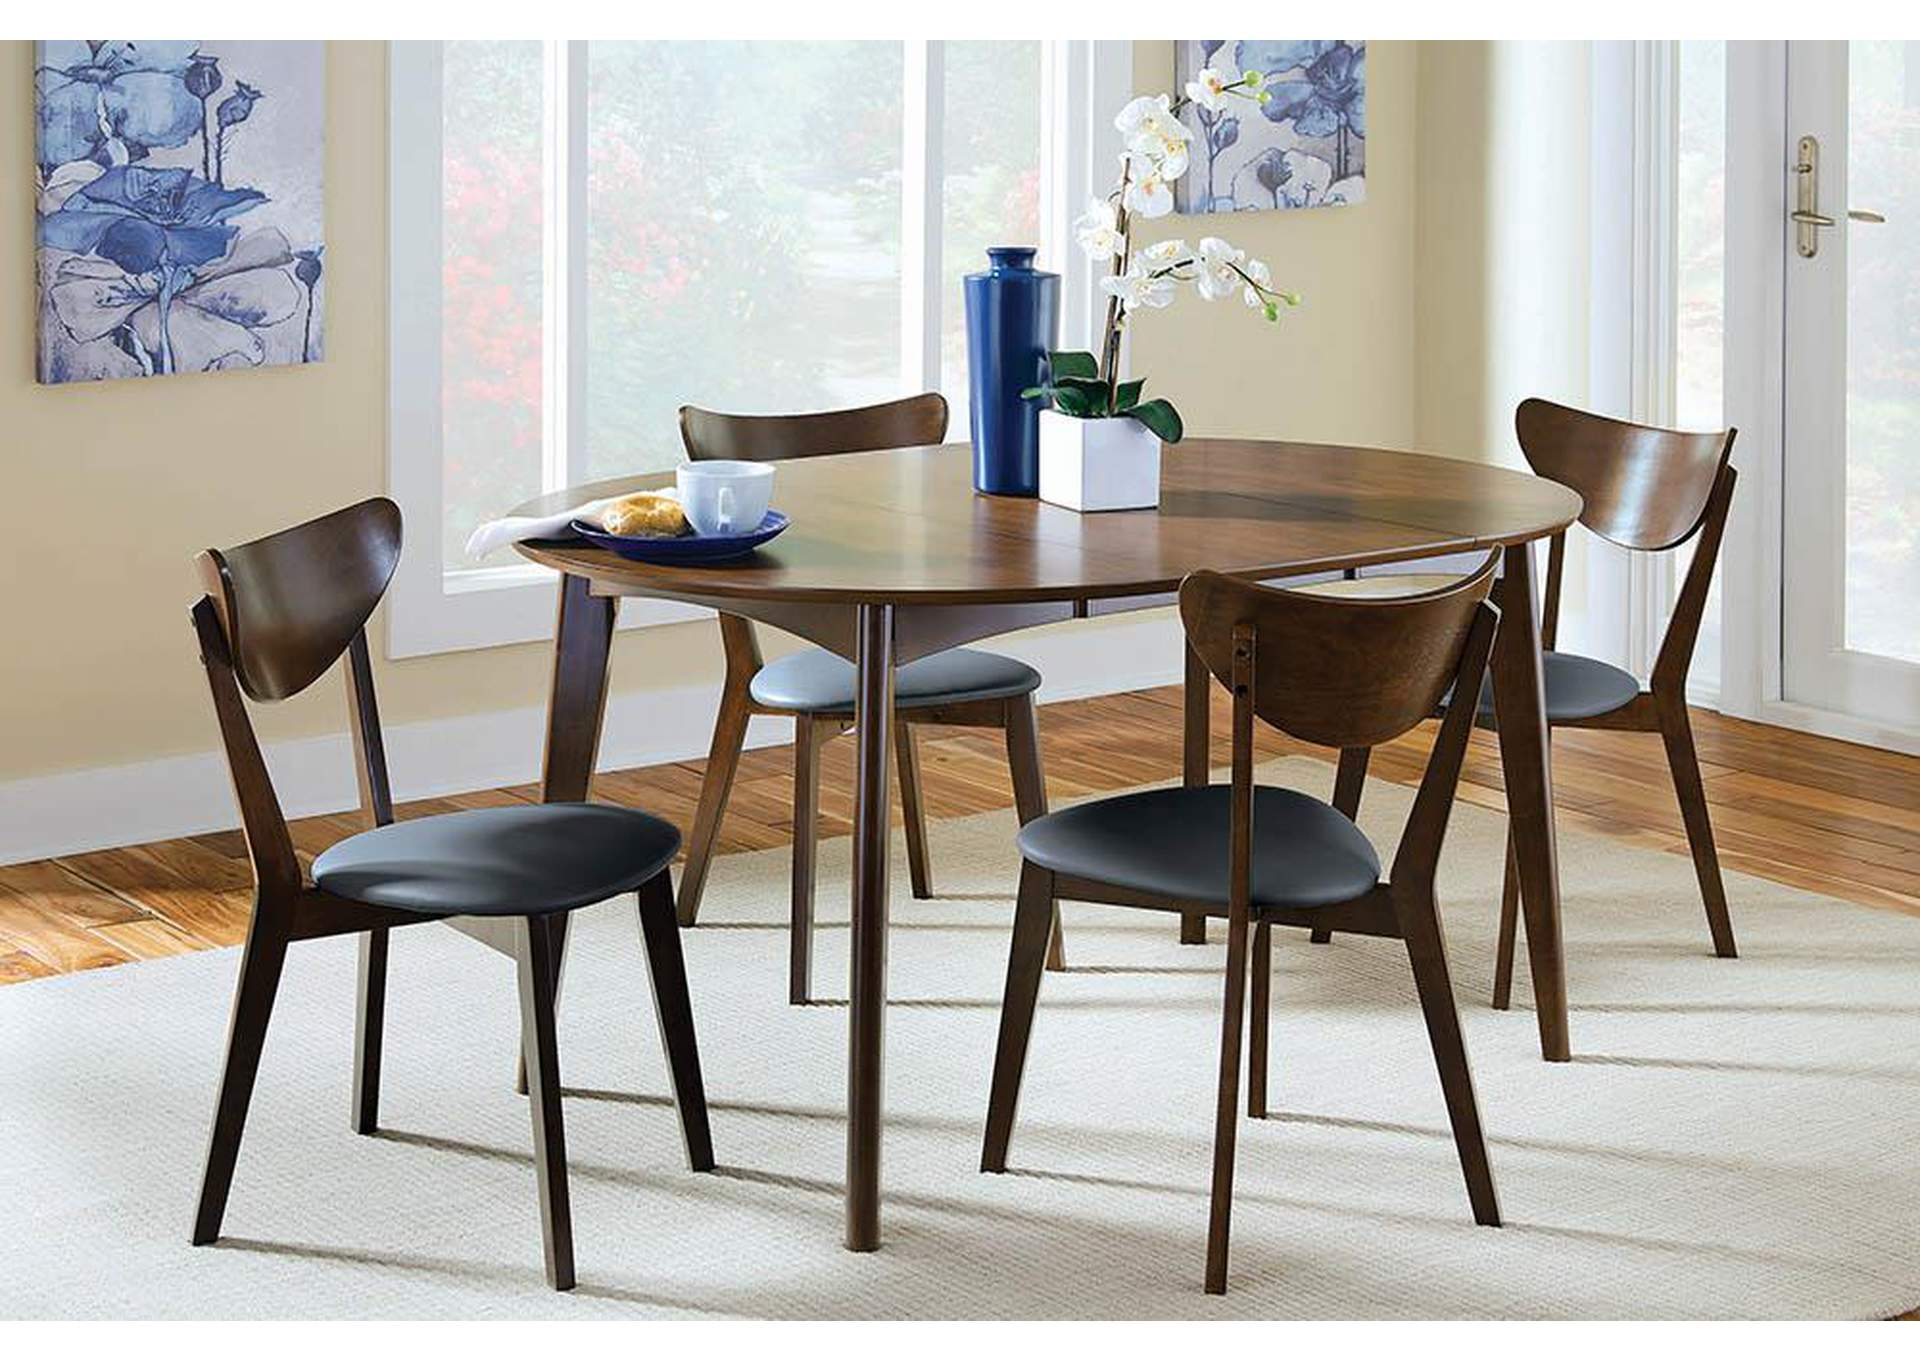 Furniture Gallery Ma Walnut Dining Chair Set Of 2